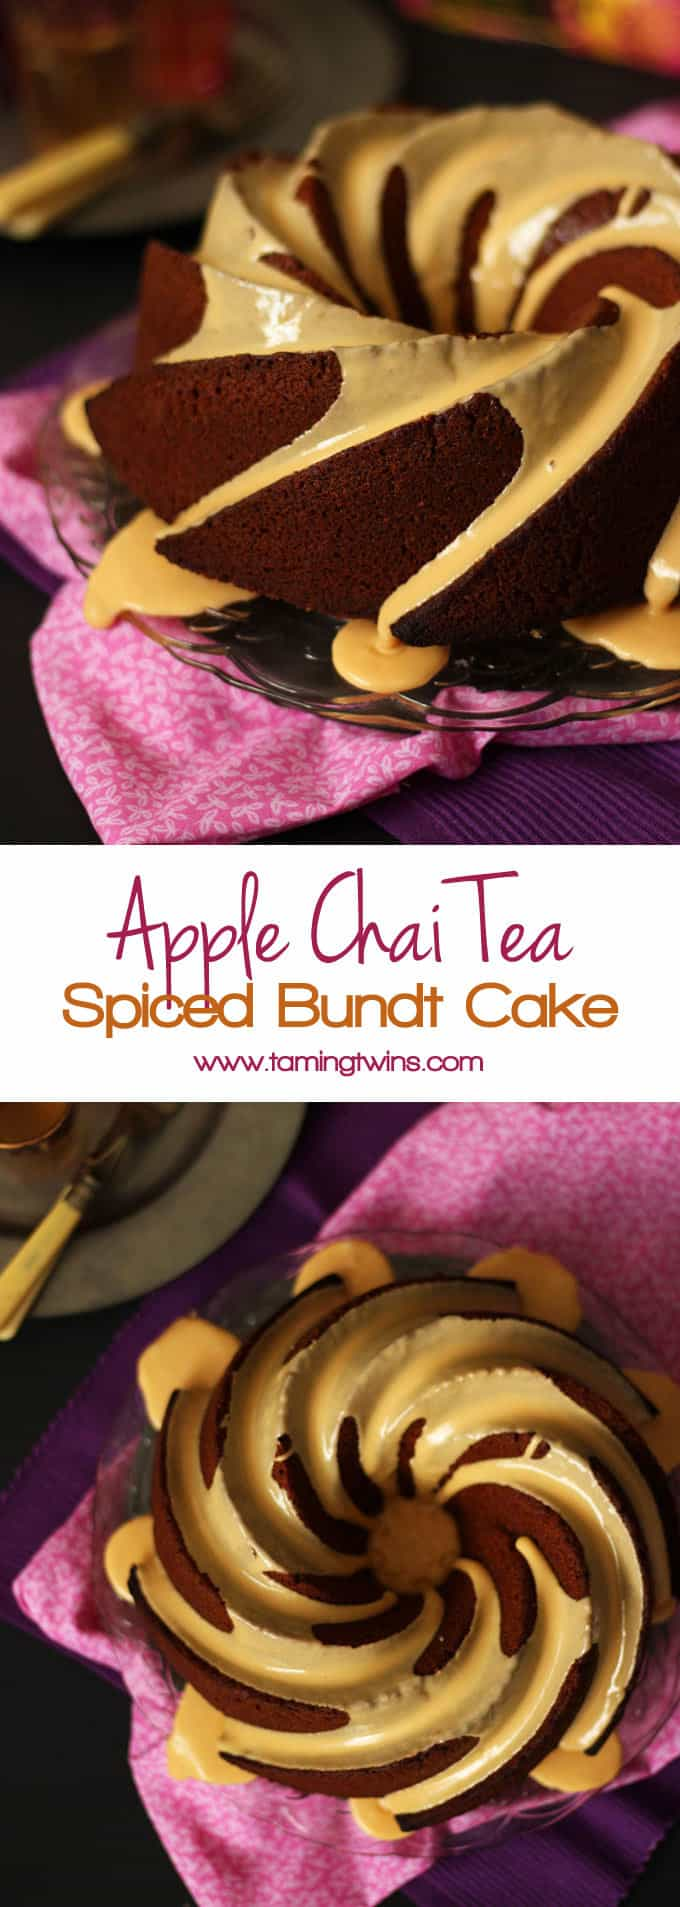 Apple Chai Spiced Bundt Cake - A warming, gently spiced bake made using a chai tea infusion for added flavour and apple sauce puree for a moreish texture. (The applesauce also makes this lower in fat than your usual bundt cake. Hurrah!)